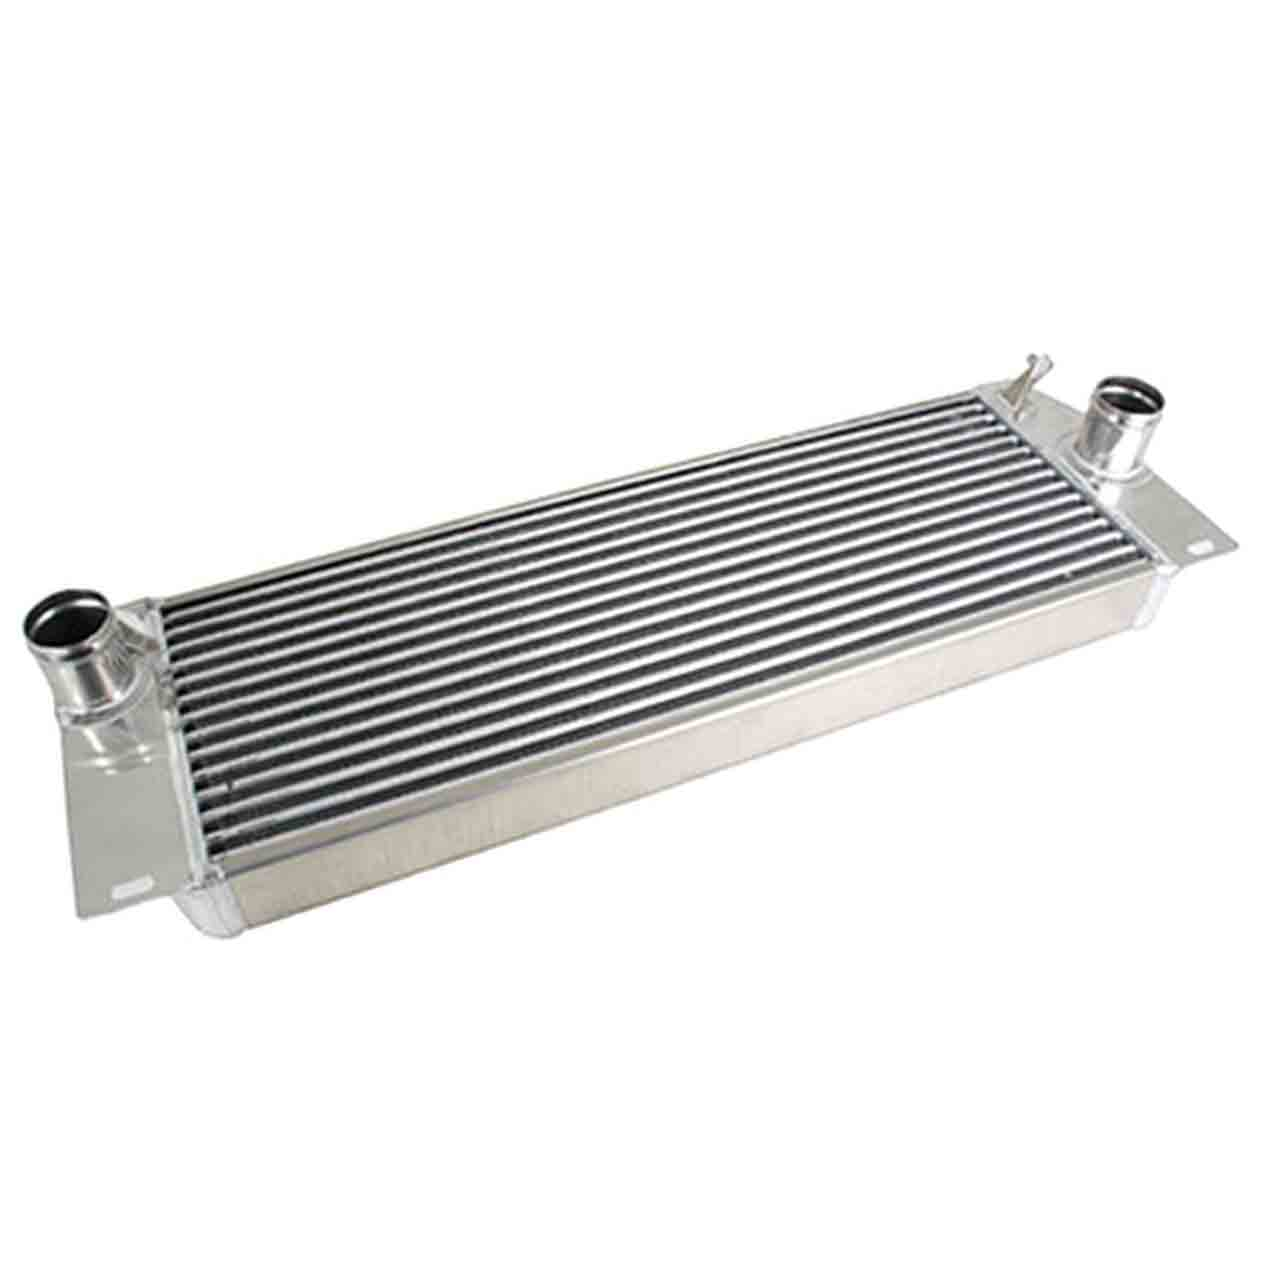 Intercooler Manuale Discovery 2 Terrafirma GR2-01513